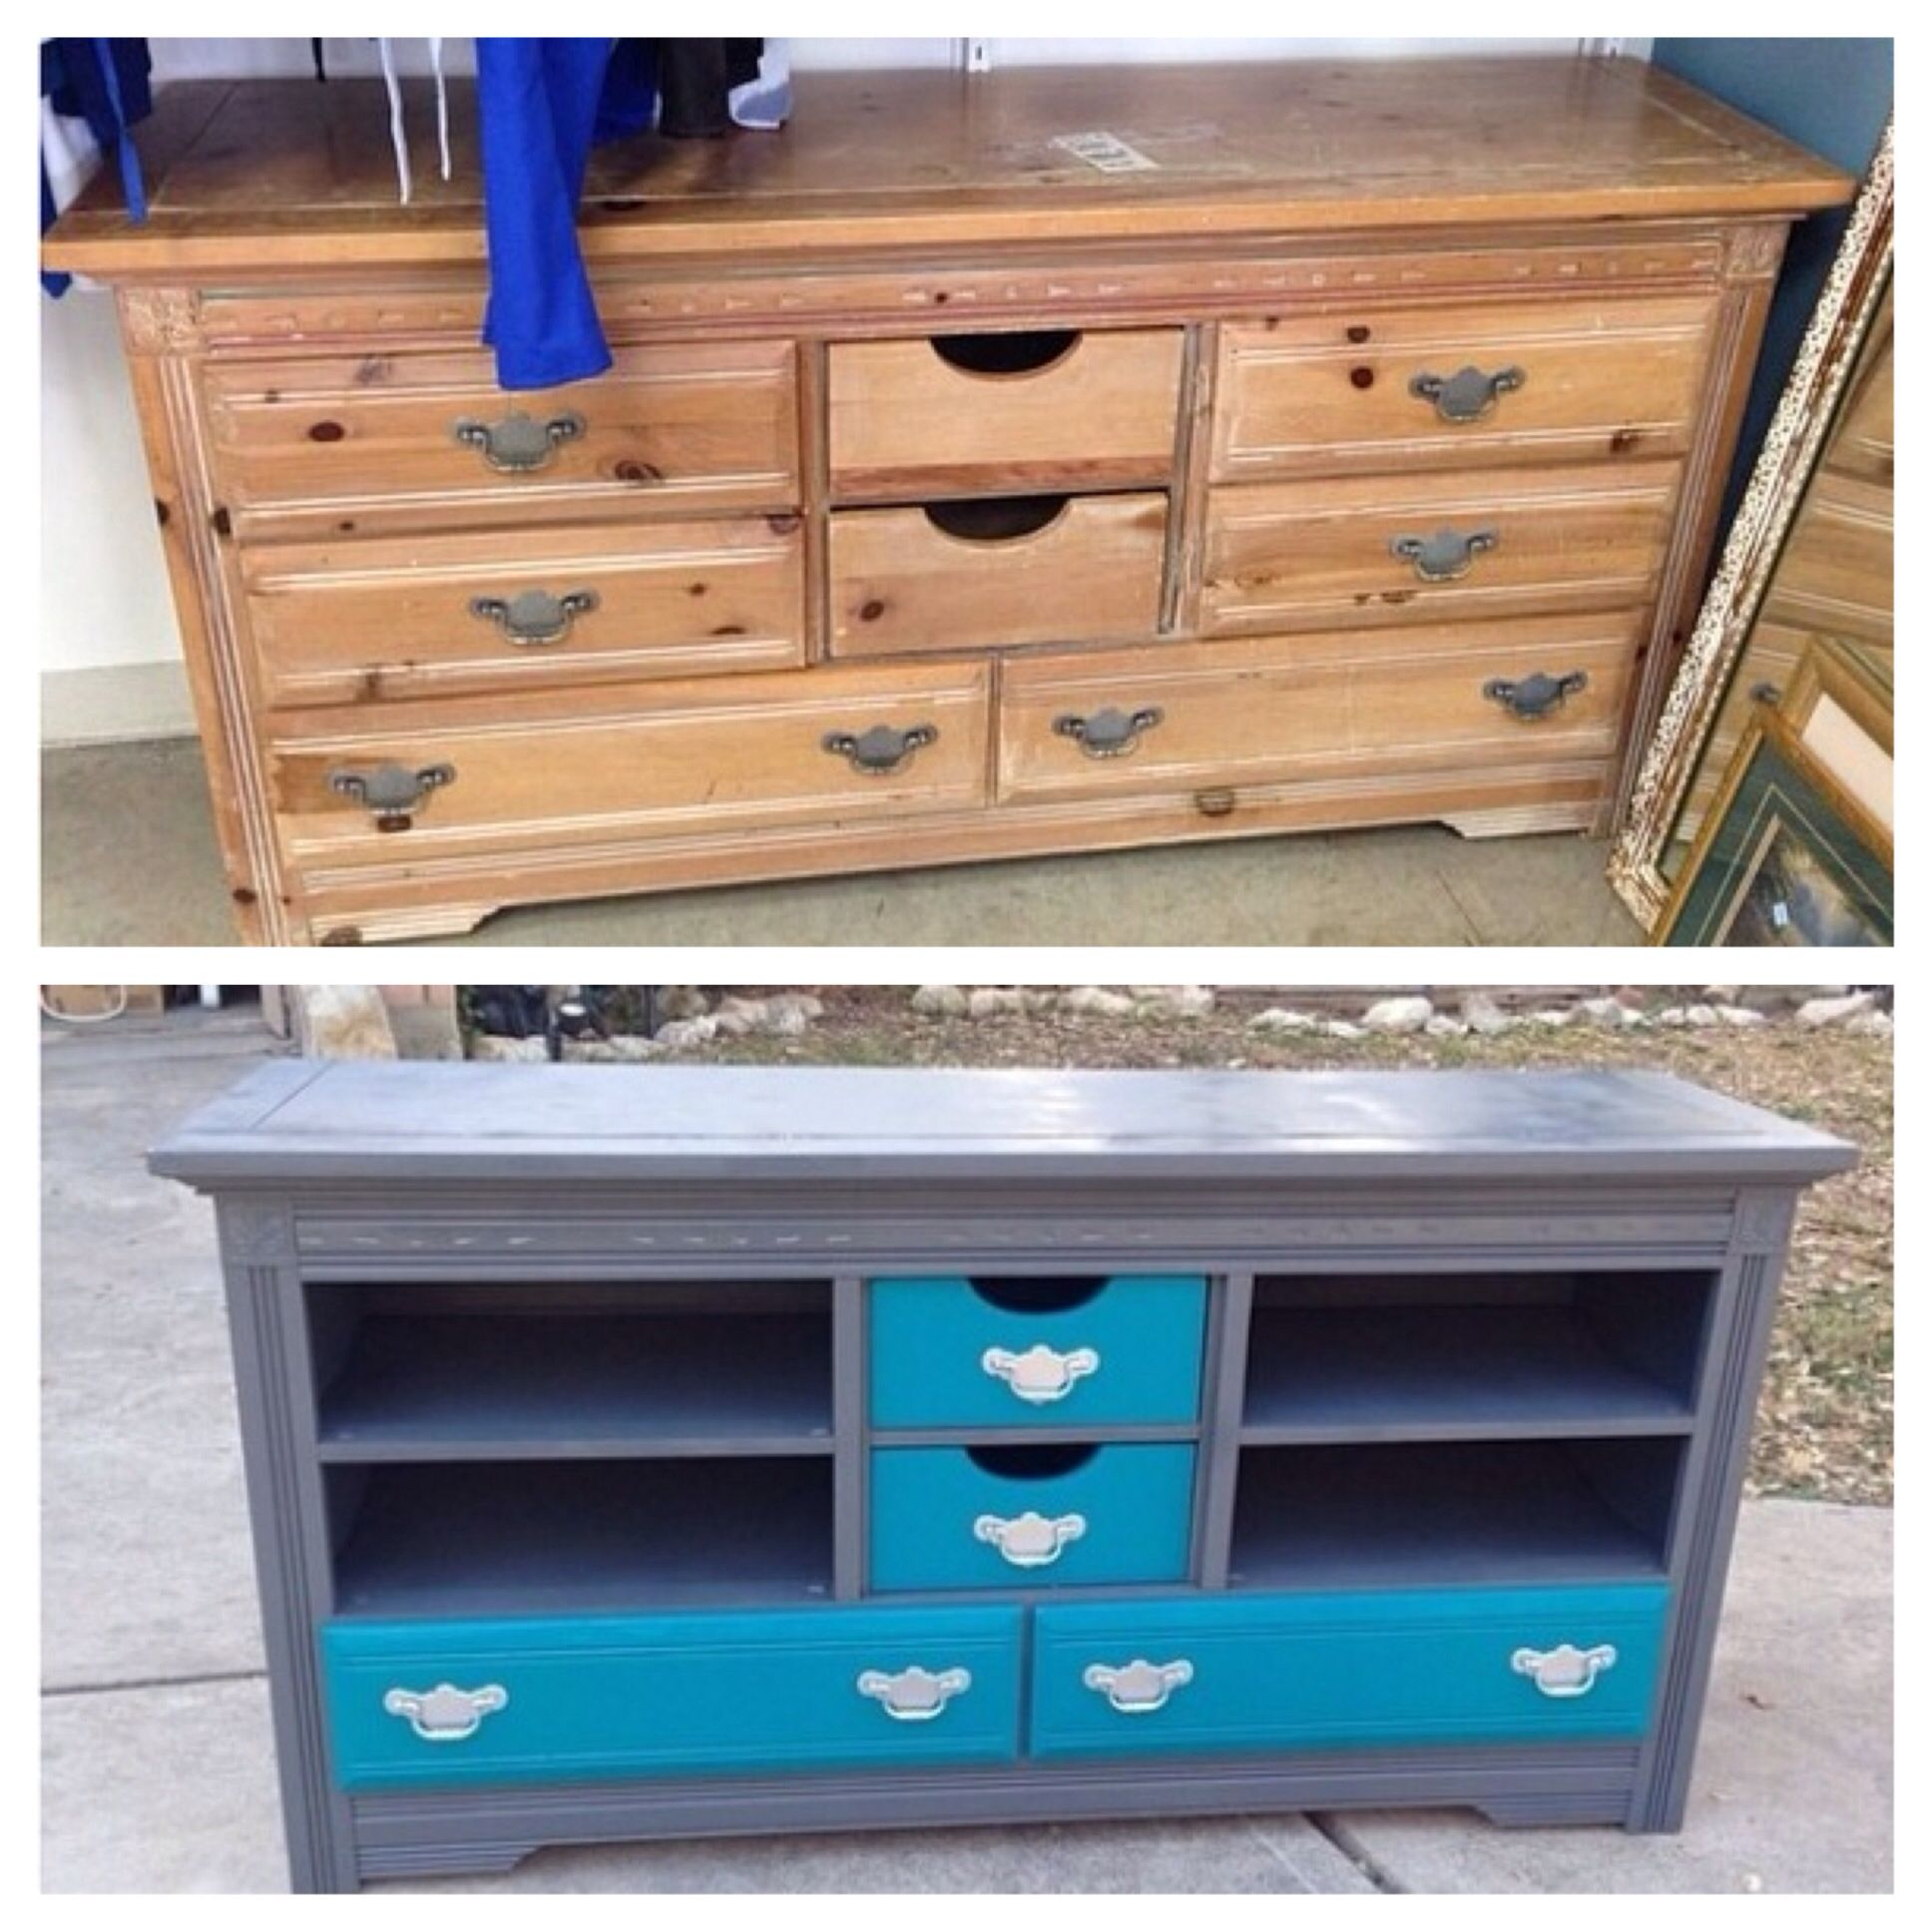 I Turned A Cheap Old Goodwill Dresser Into An Awesome